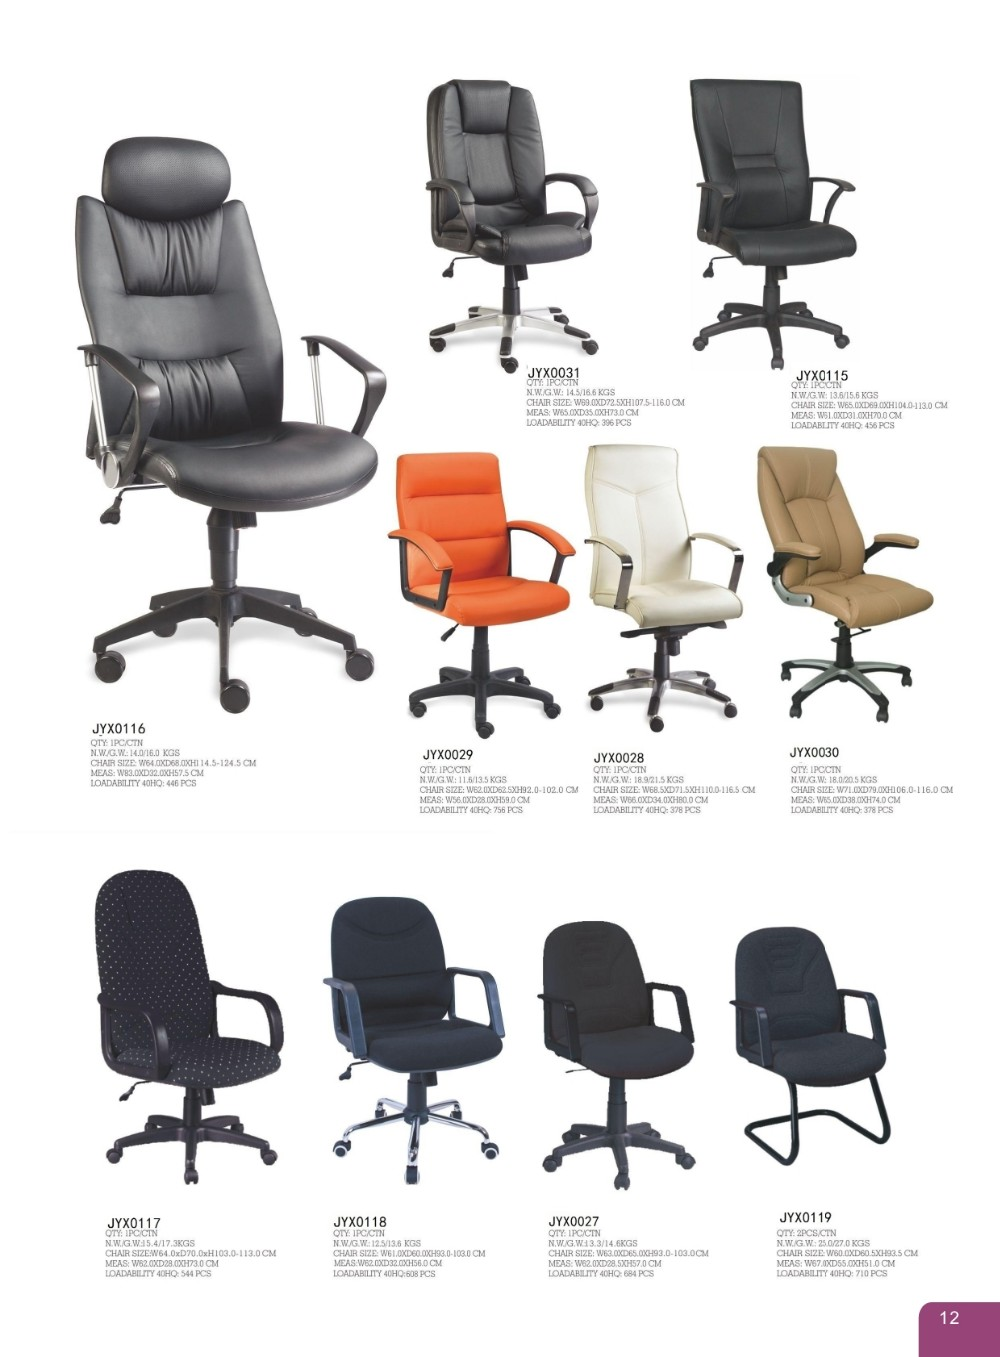 Ltd A Leading Manufacturer Exporter In Furniture Since 2010 Covers More Than 5 000 Square Meters We Supply All Kinds Of Office Chair And Computer